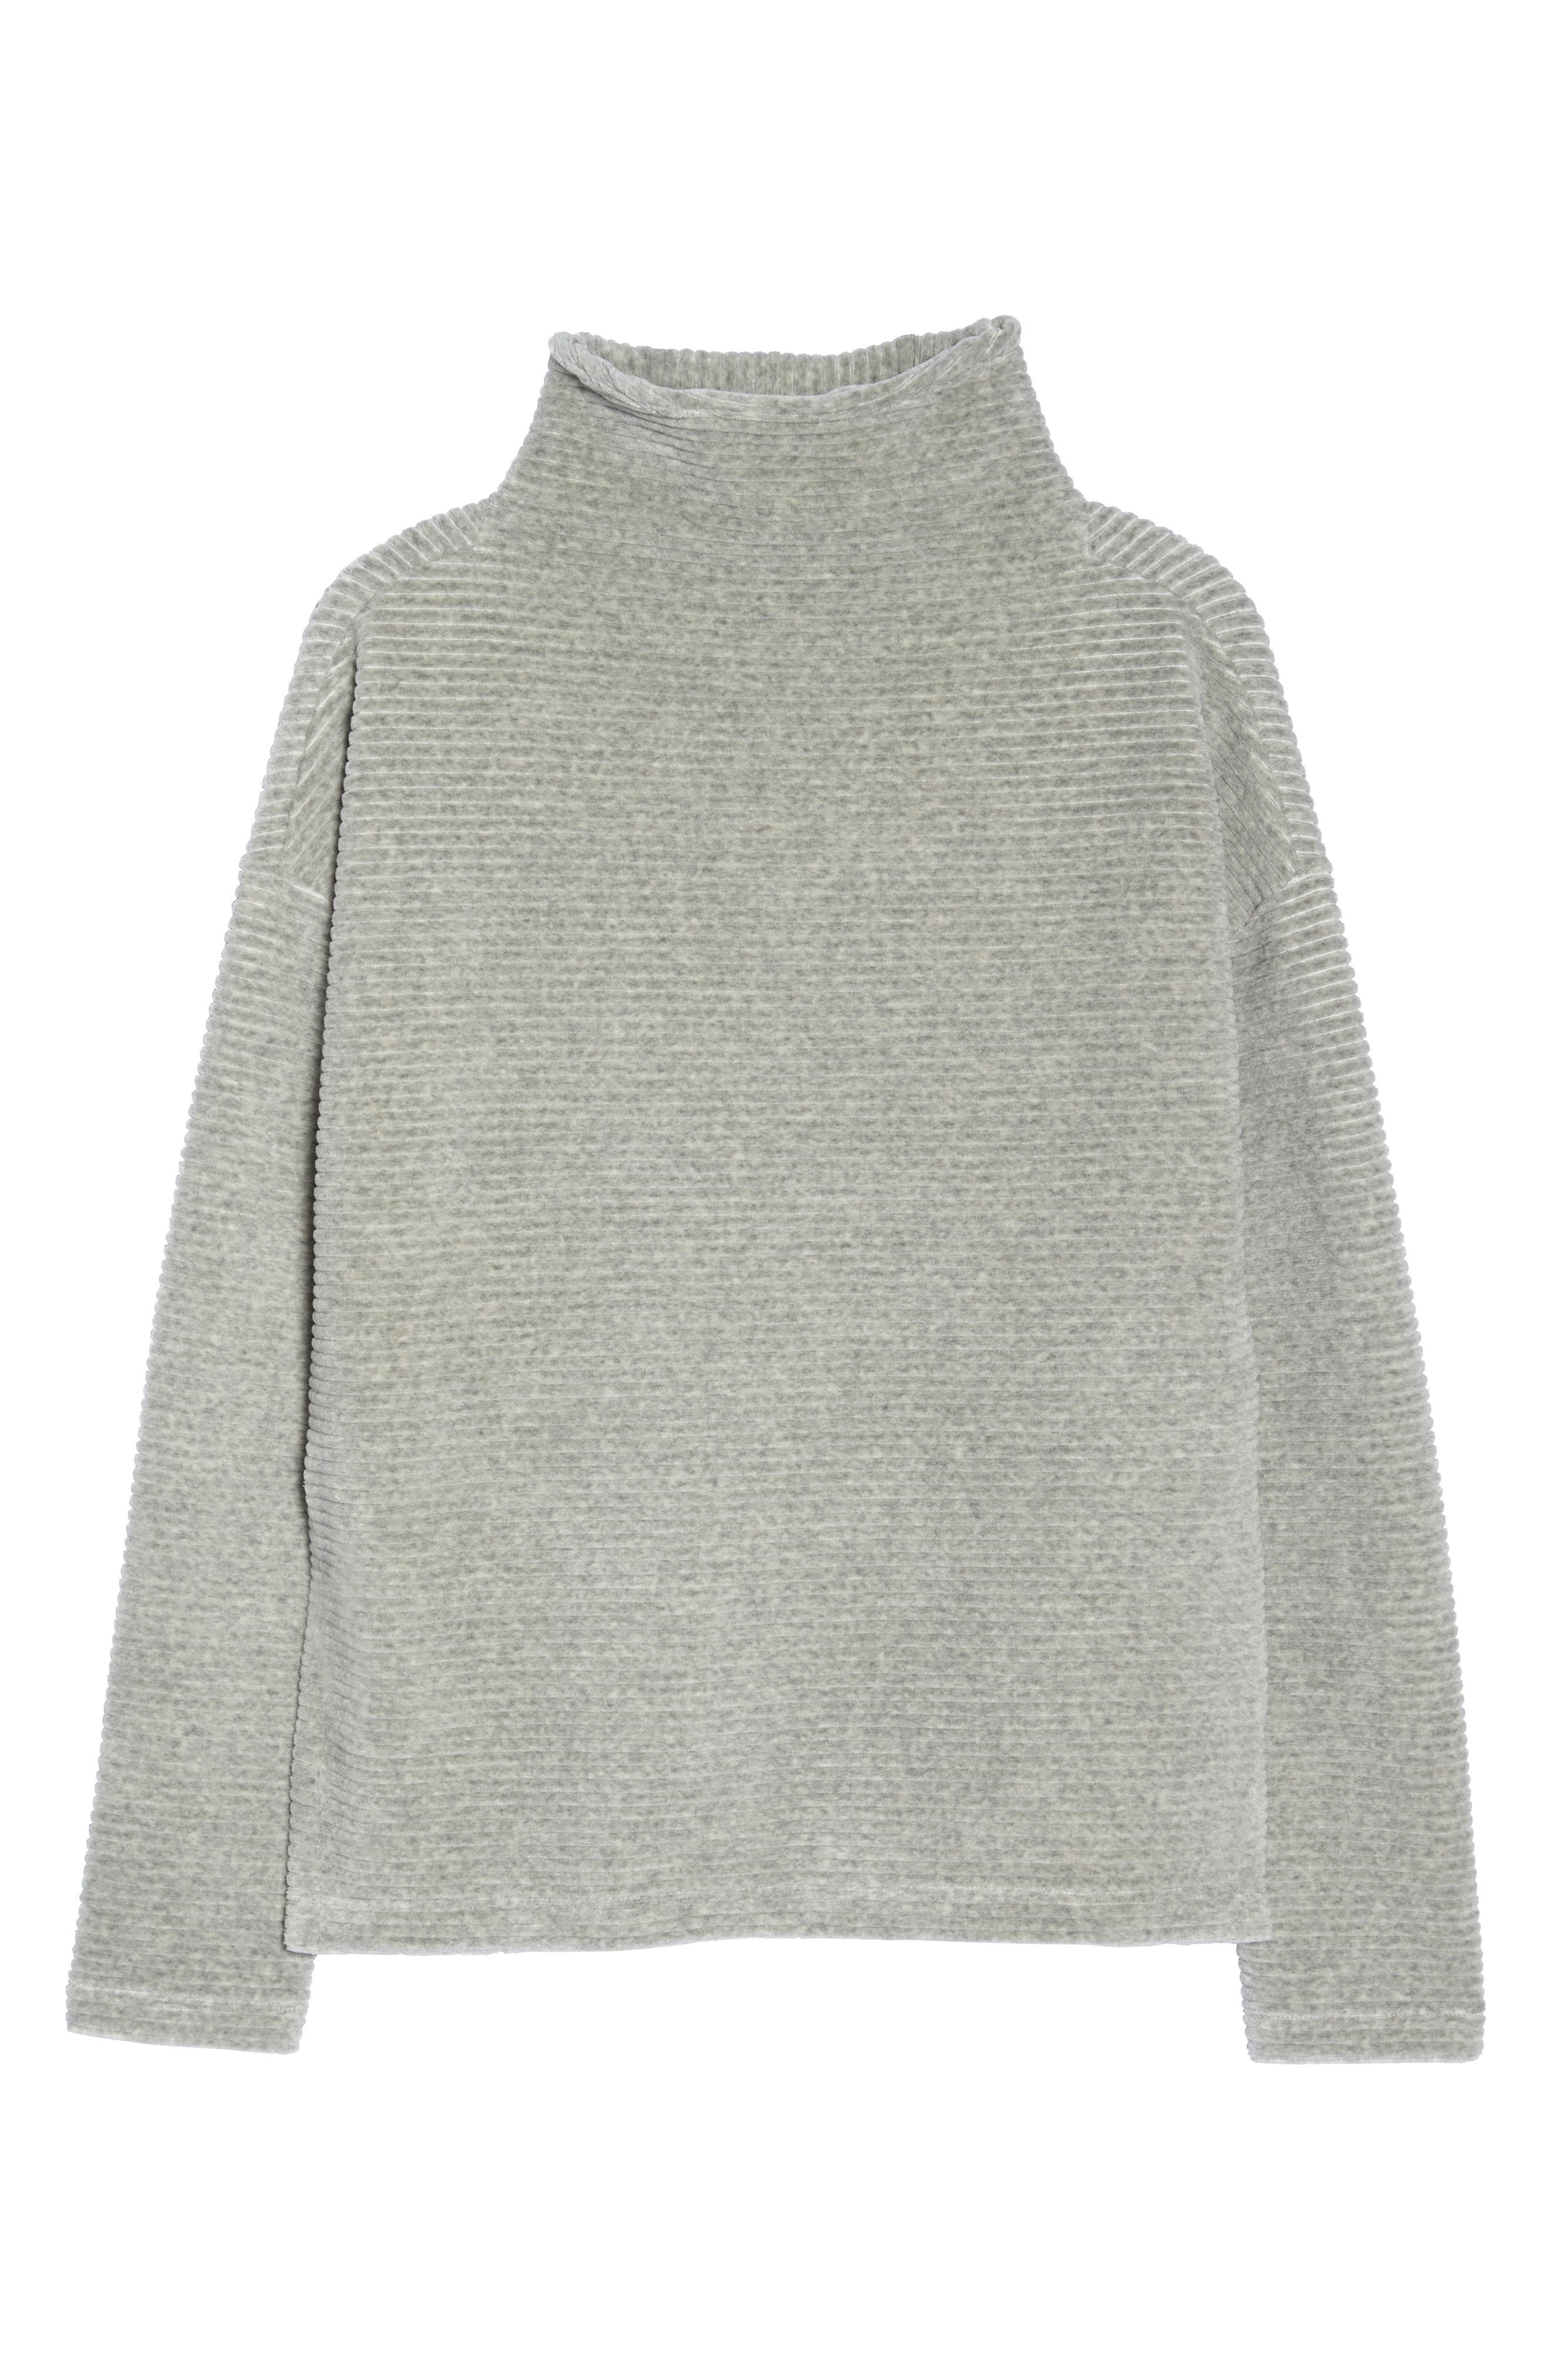 Bright Side Pullover,                             Alternate thumbnail 7, color,                             GREY CRYSTAL